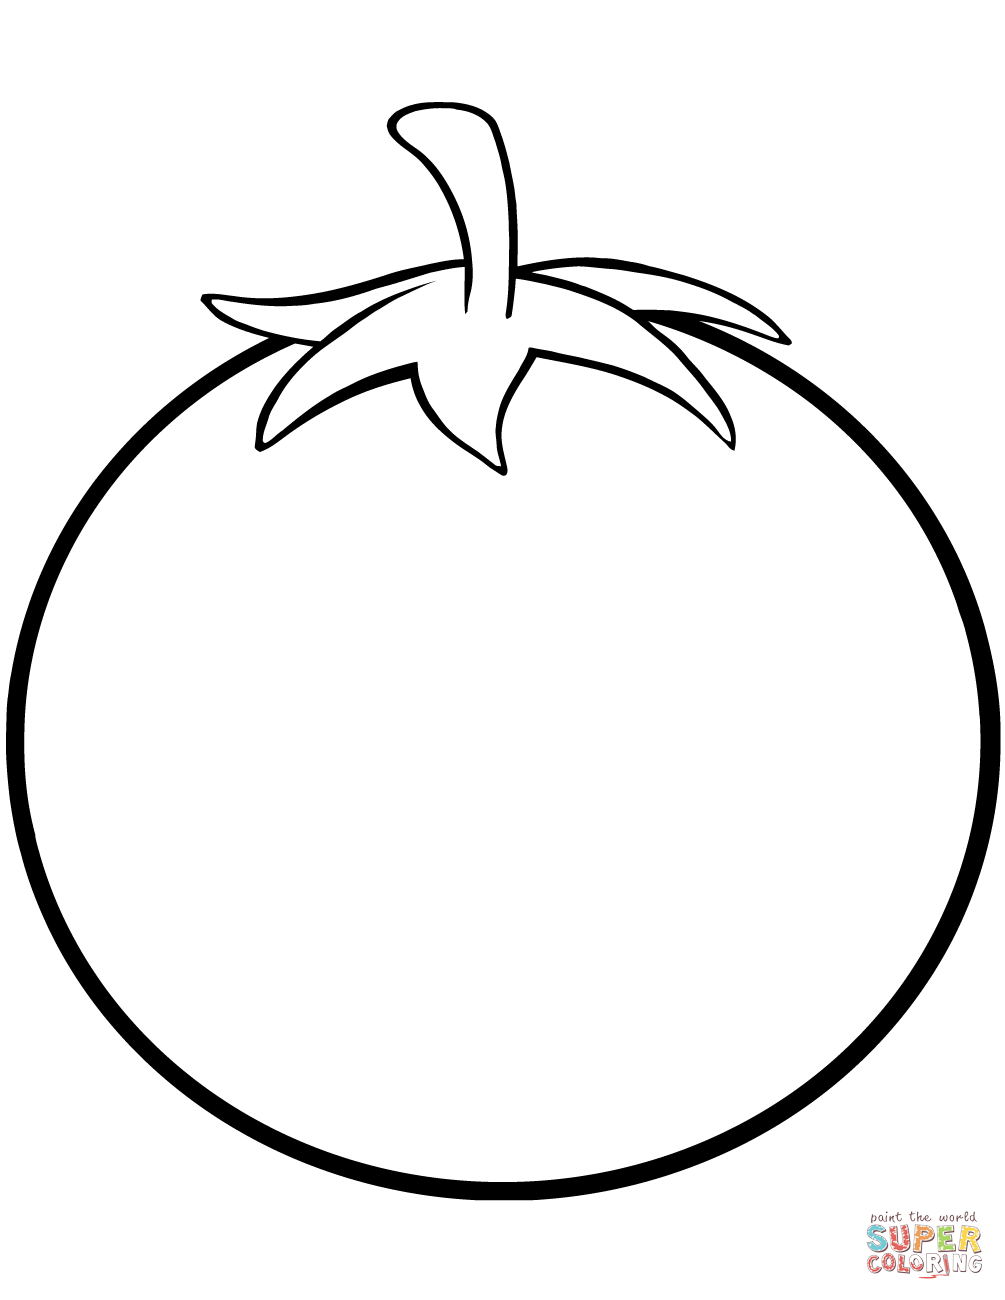 coloring tomato outline tomato coloring page free printable coloring pages outline tomato coloring